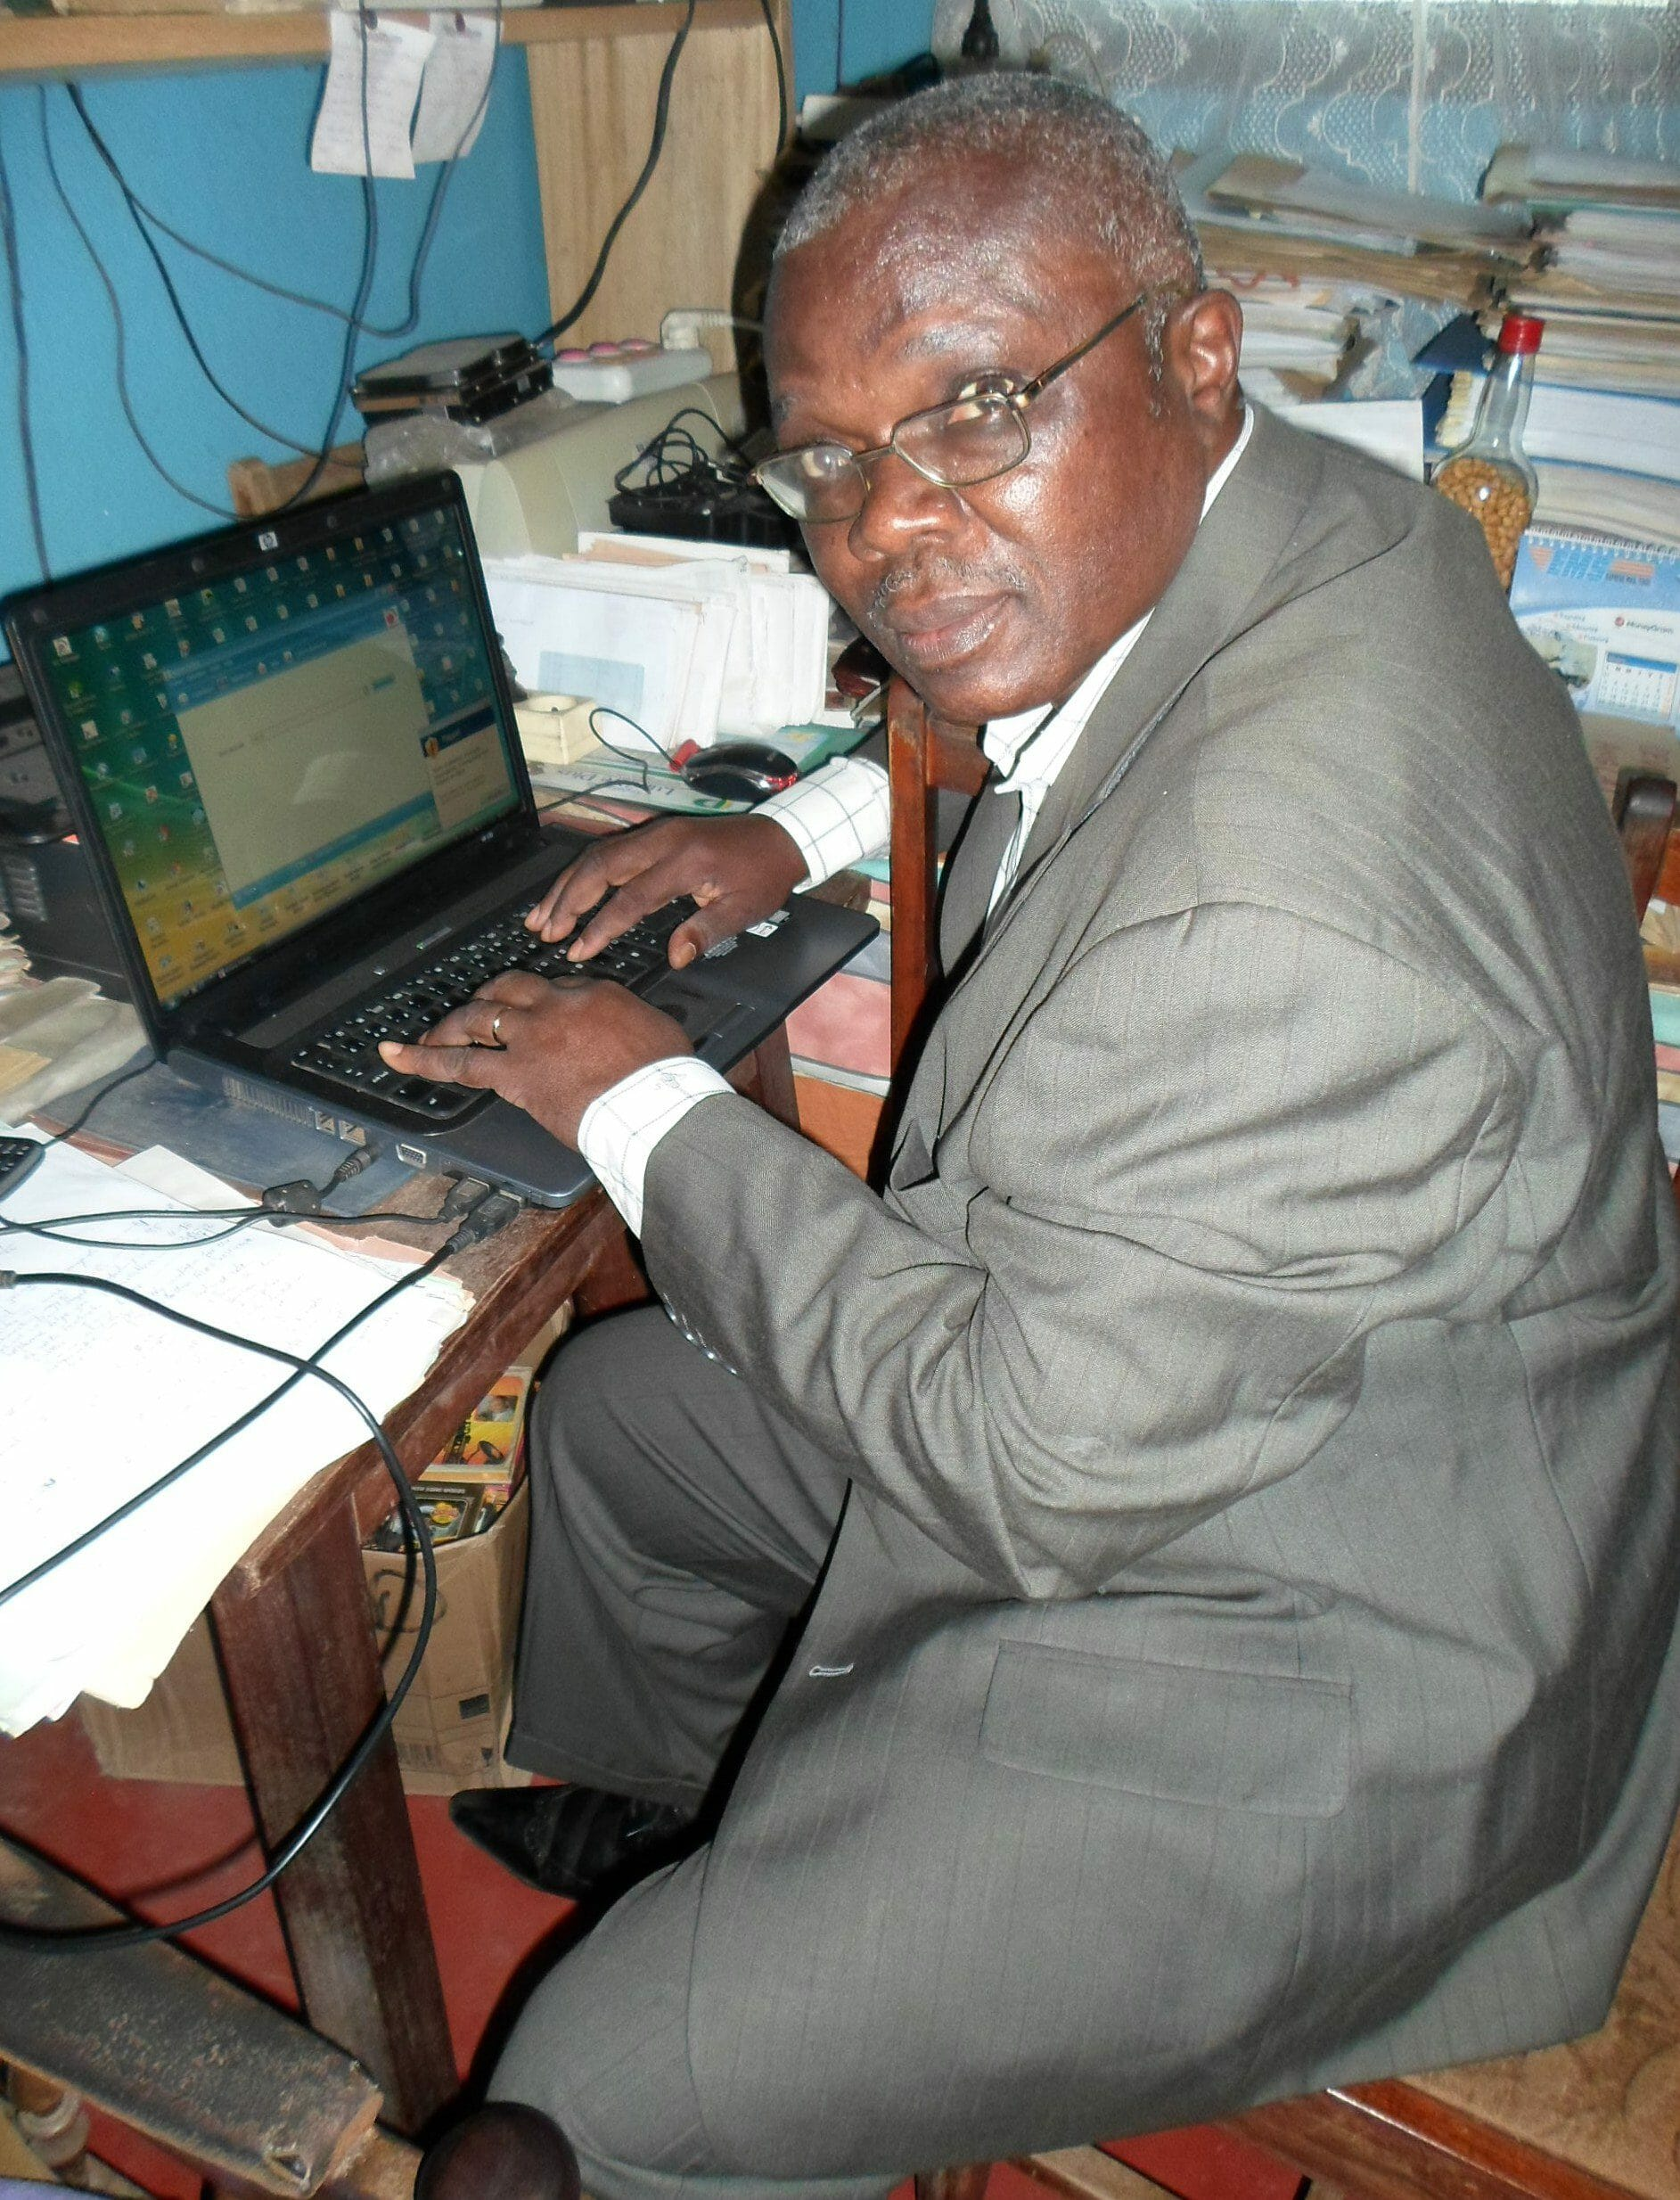 Photo of me Akoli in suit and working on a laptop in my home office to signify about Akoli